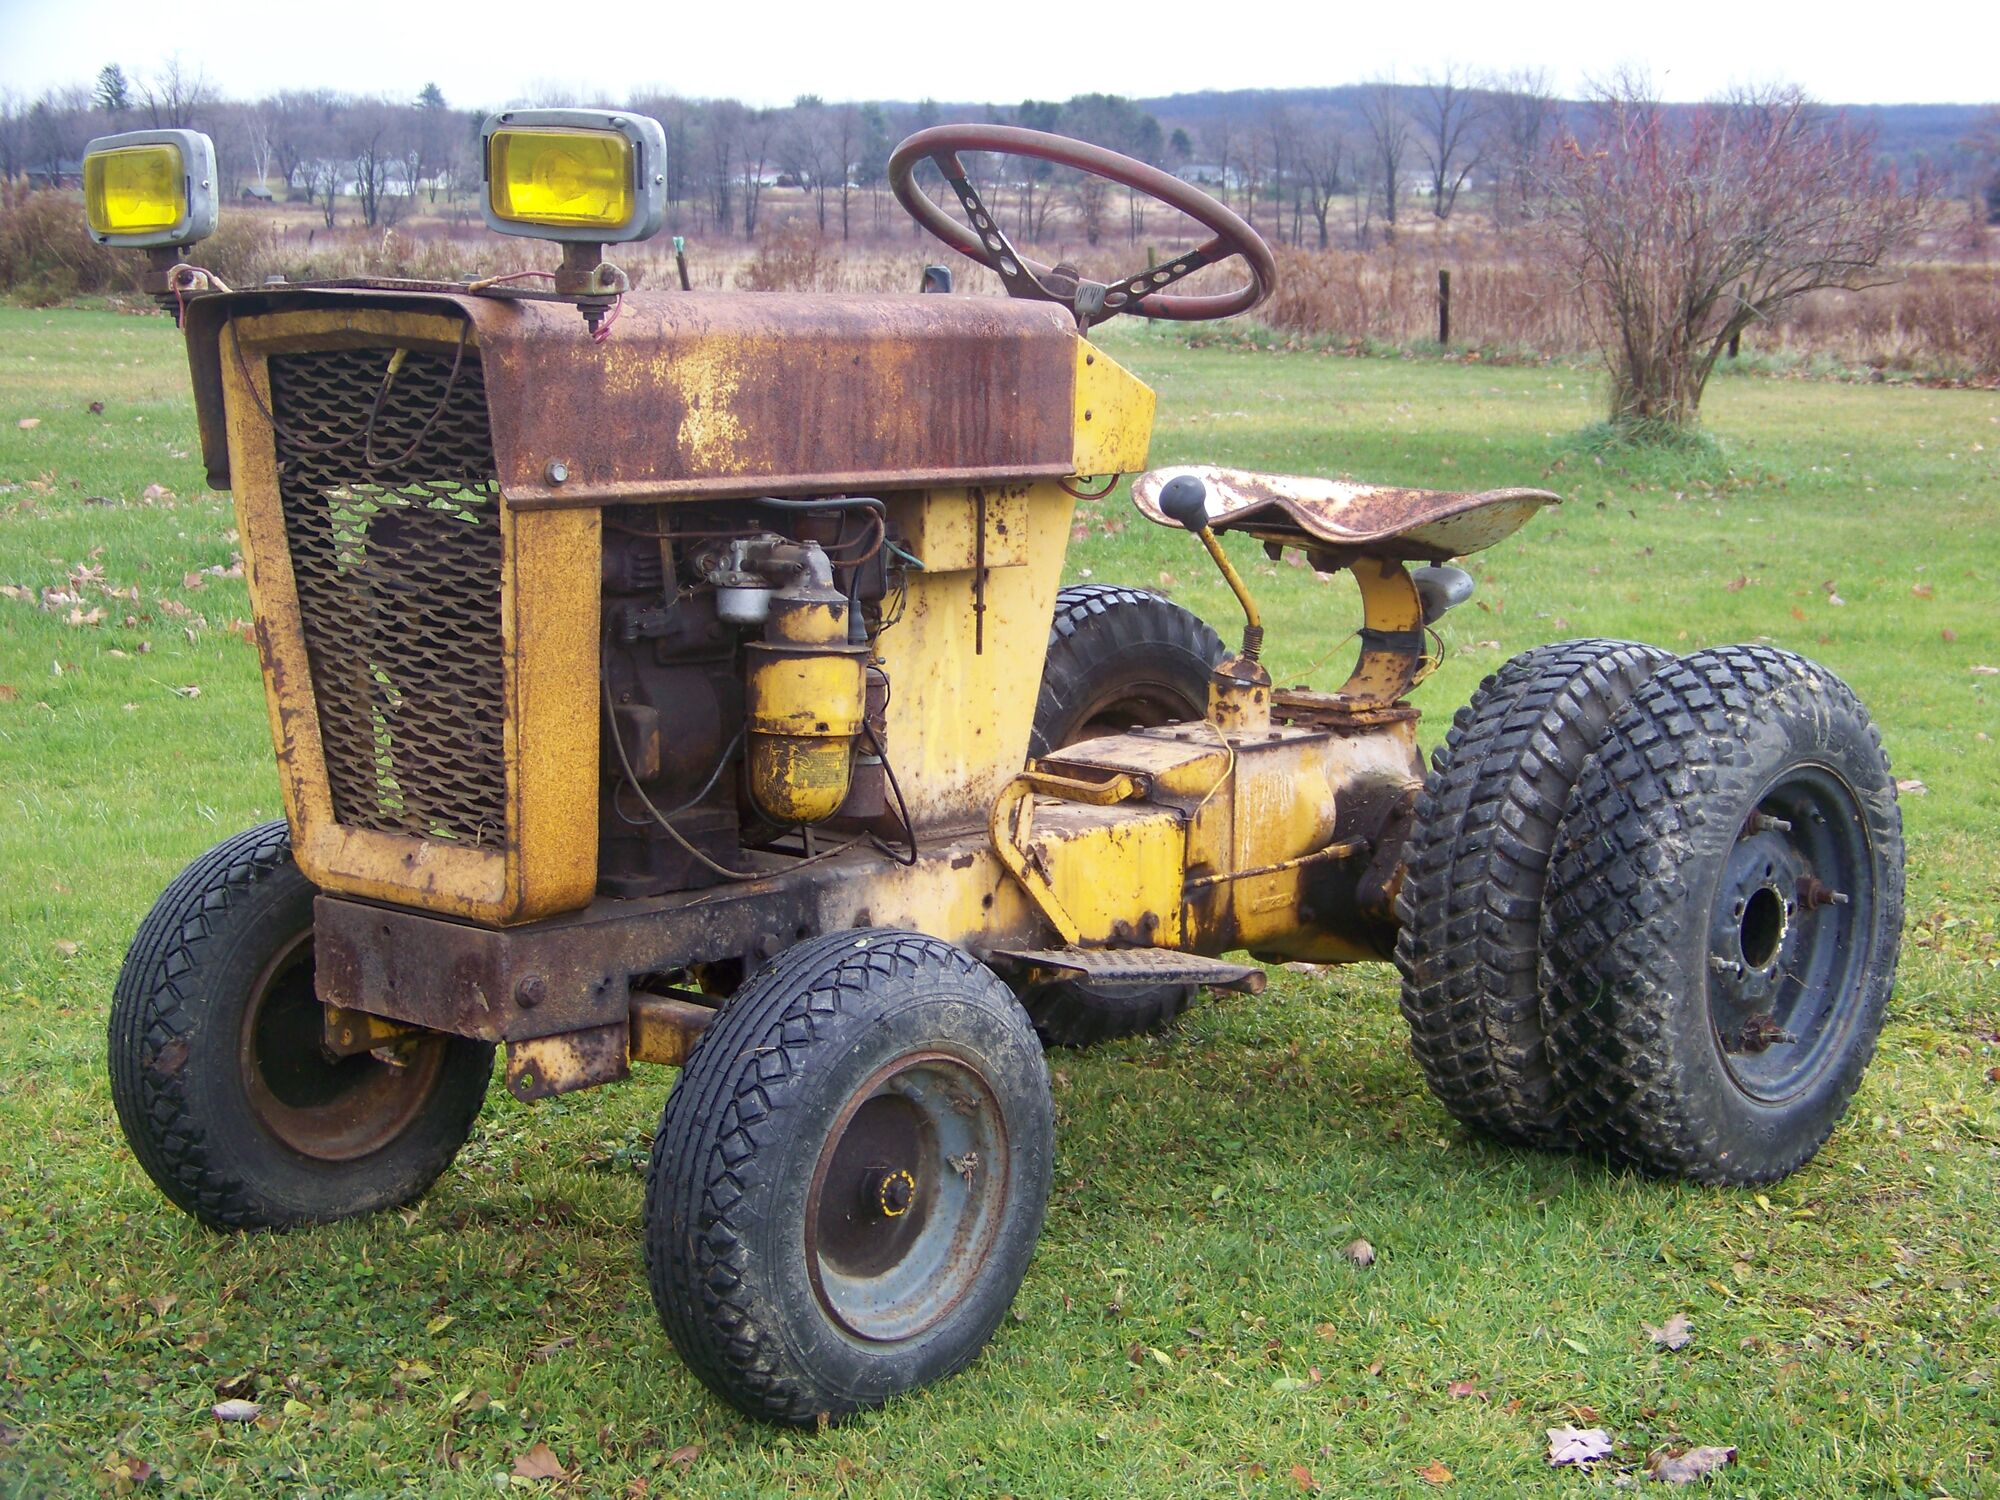 International Cub Cadet Original Tractor Construction Plant Ford Lgt 125 Garden Wiring Diagram Wiki Fandom Powered By Wikia